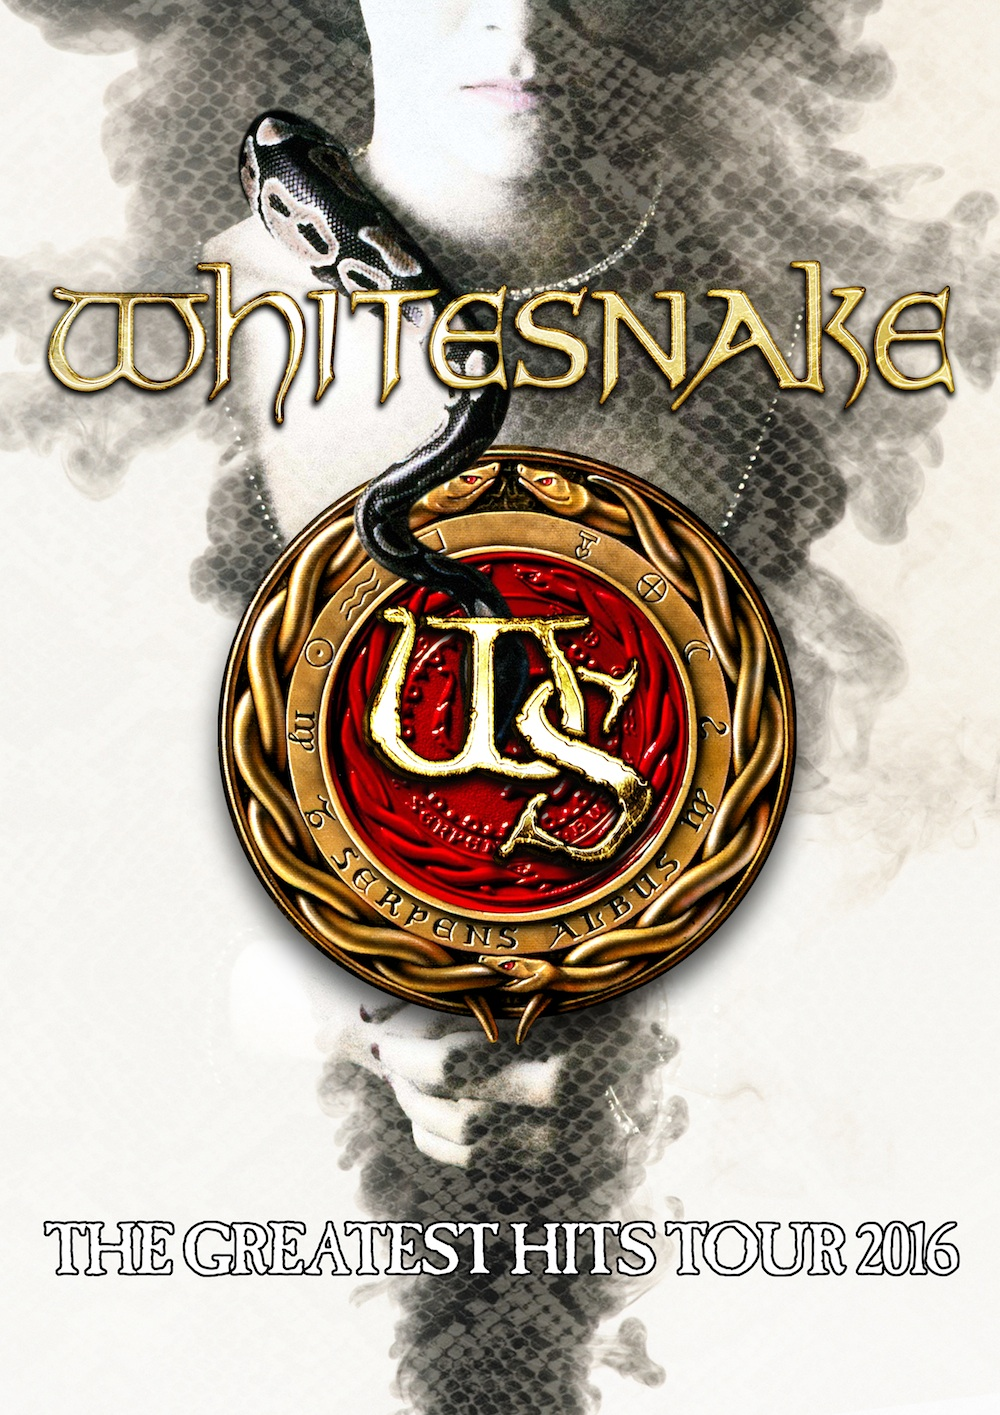 Whitesnake Greatest Hits Tour